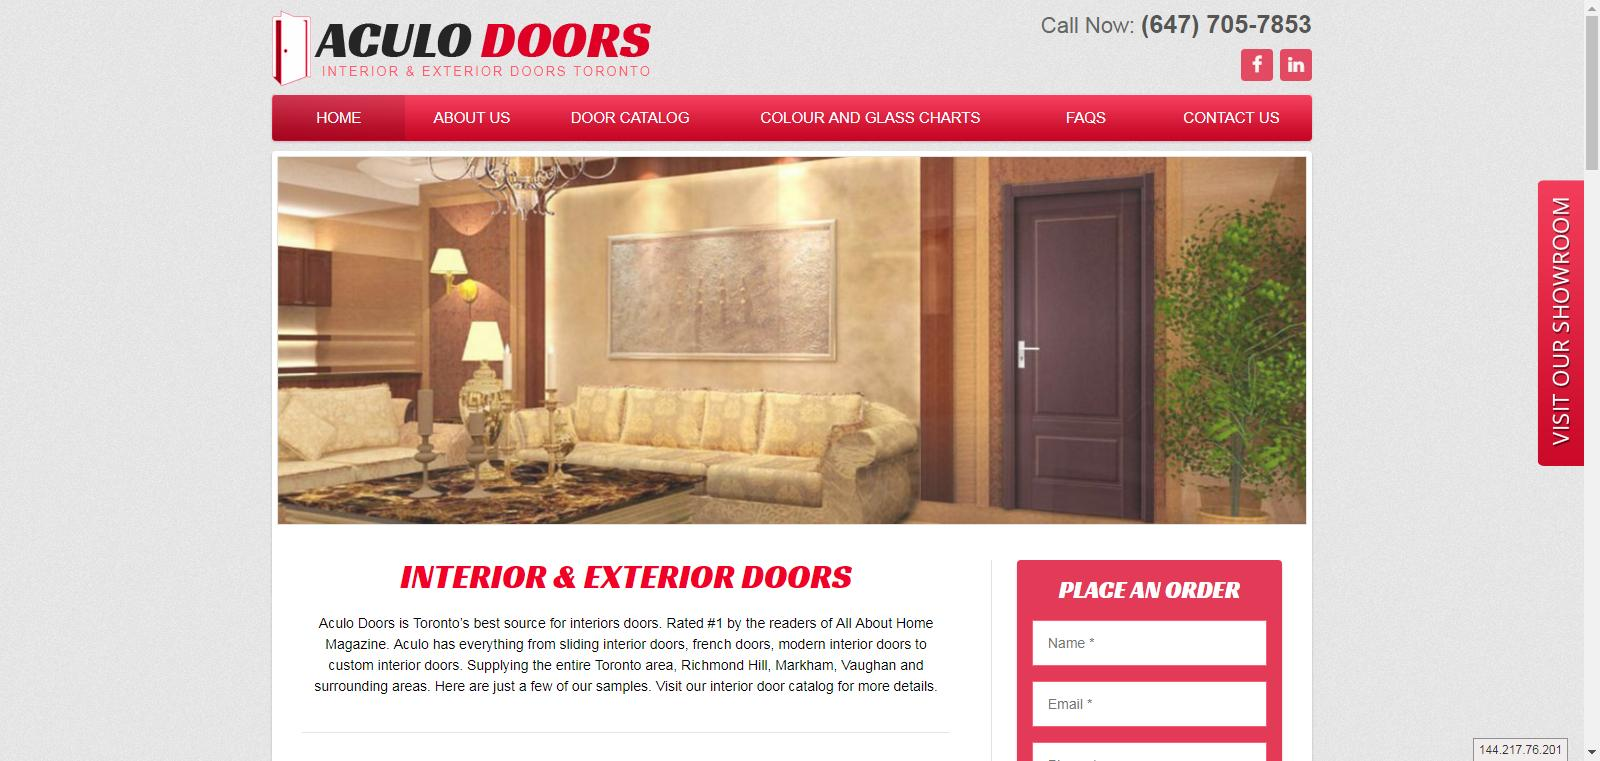 Home Improvement Is Our Specialty, And We Make All Of The Home Improvement  Websites We Design Unique.